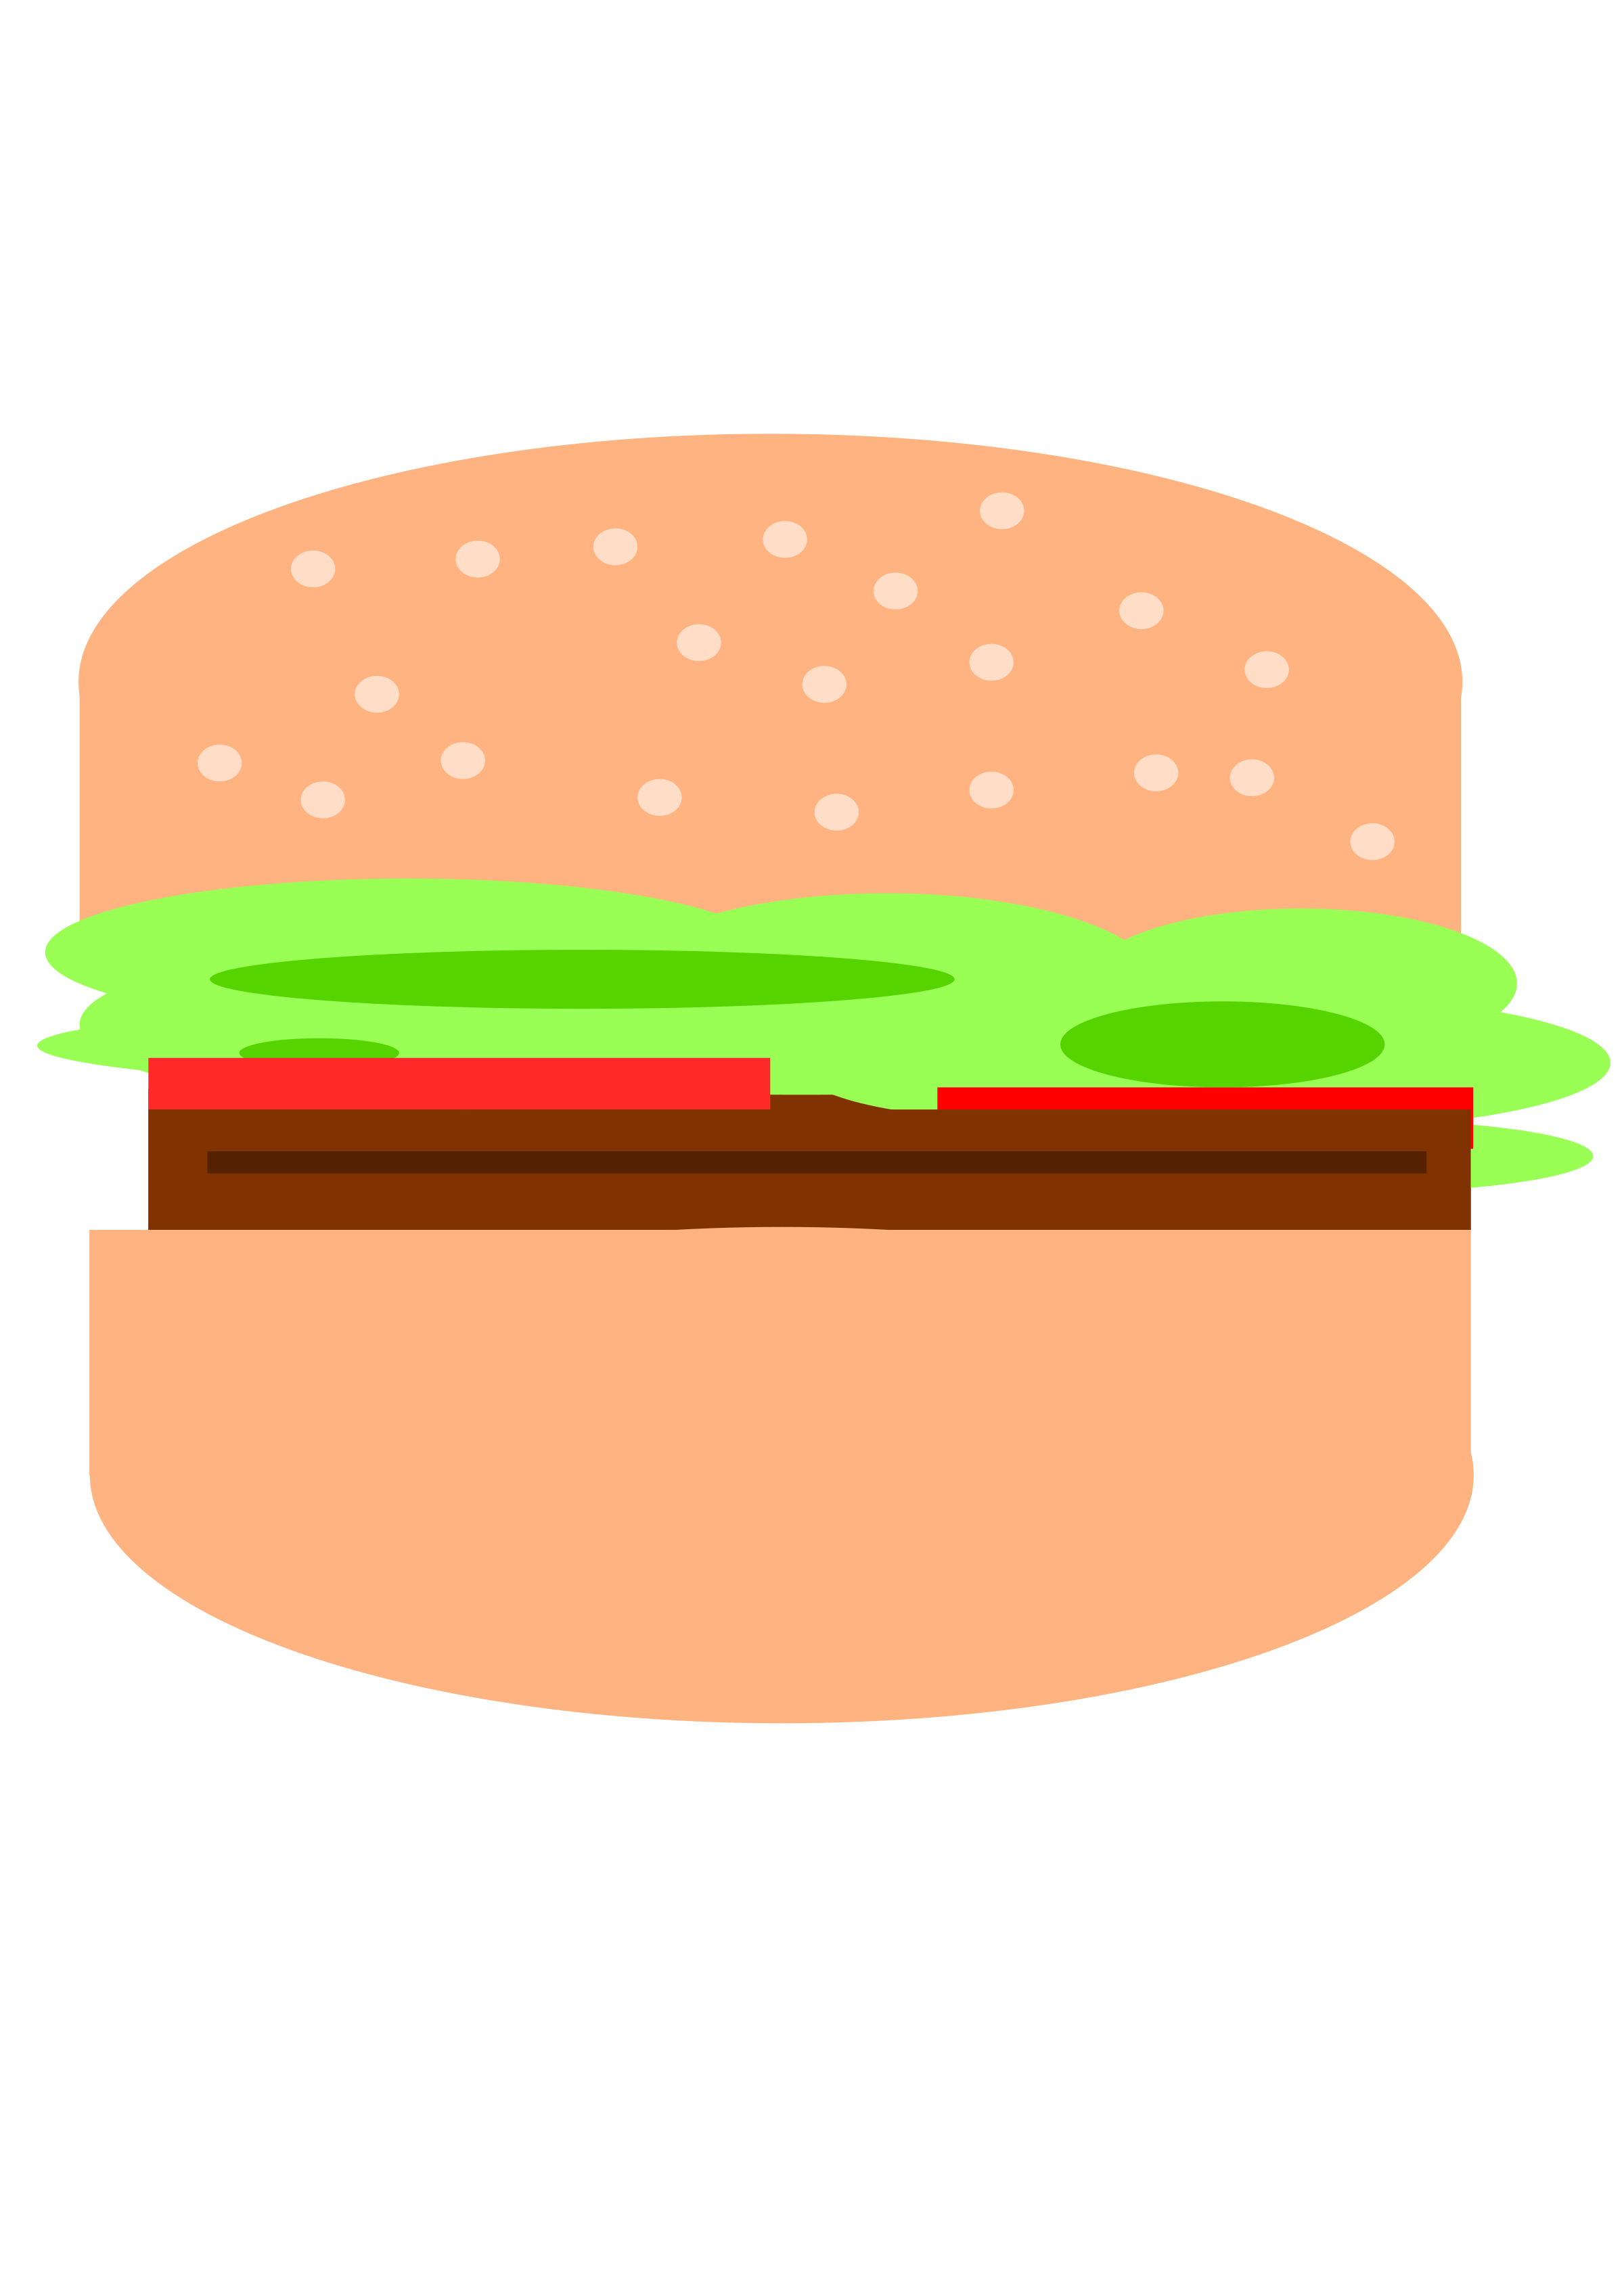 Simple hamburger by Magnesus